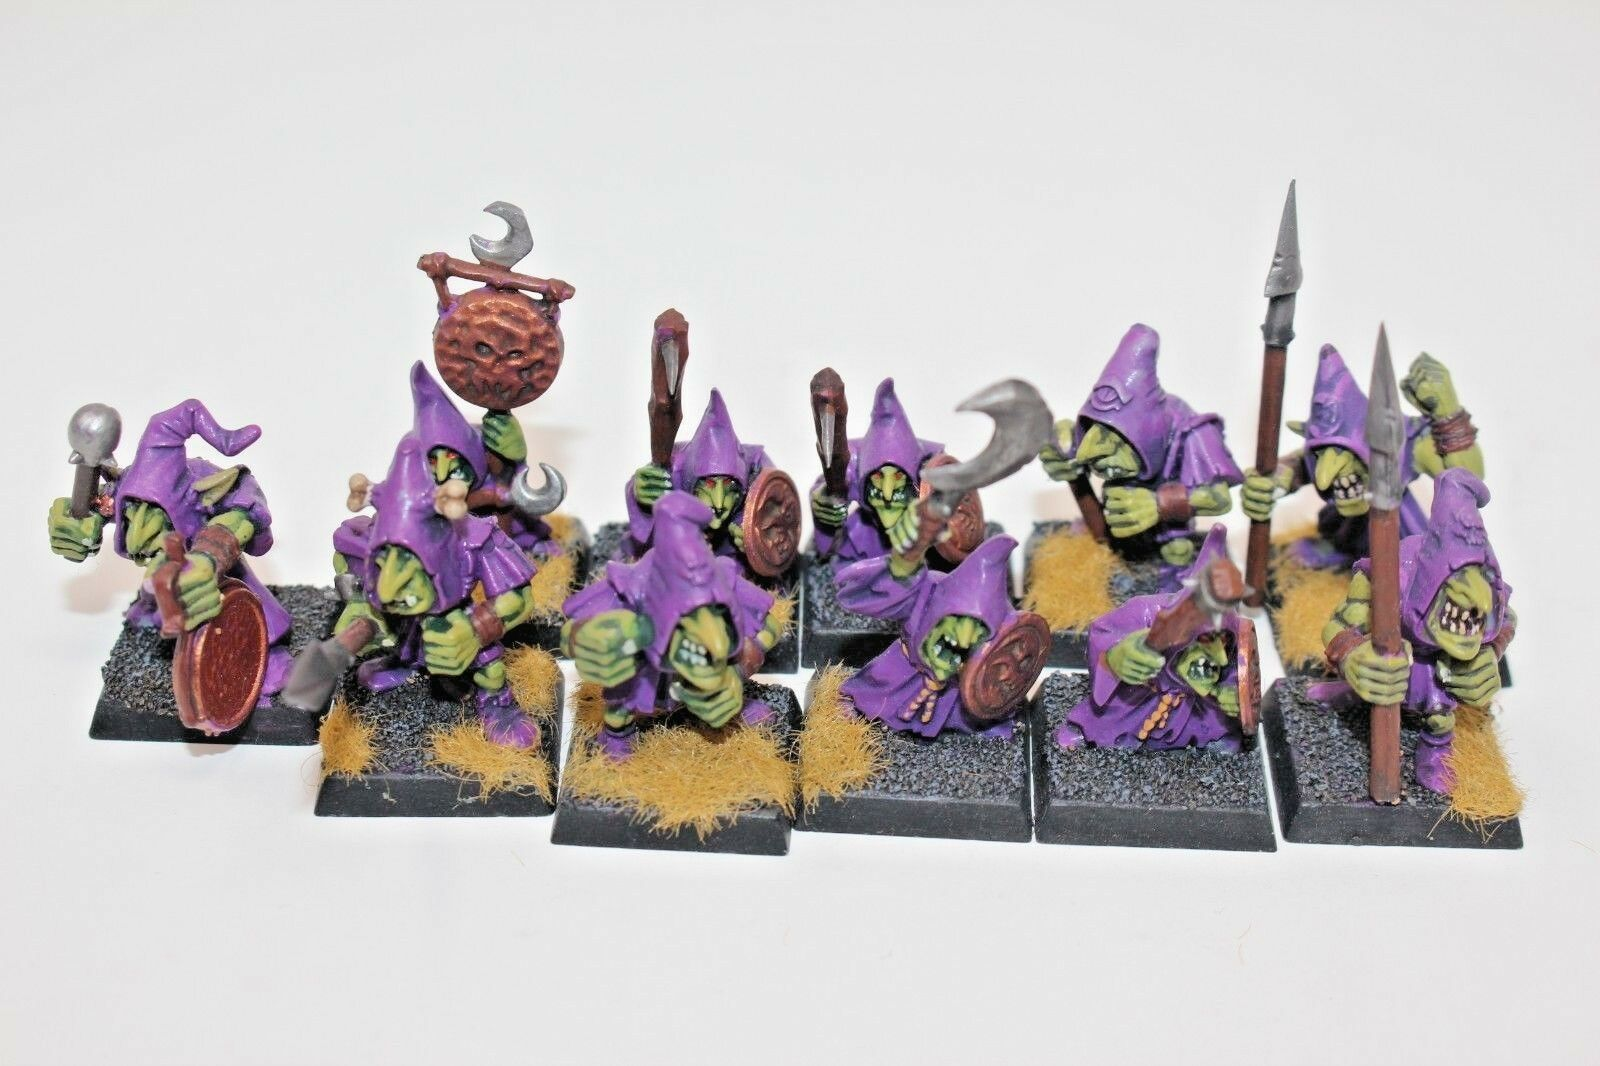 Warhammer Orcs and Goblins Night Goblins Well Painted - JYS62